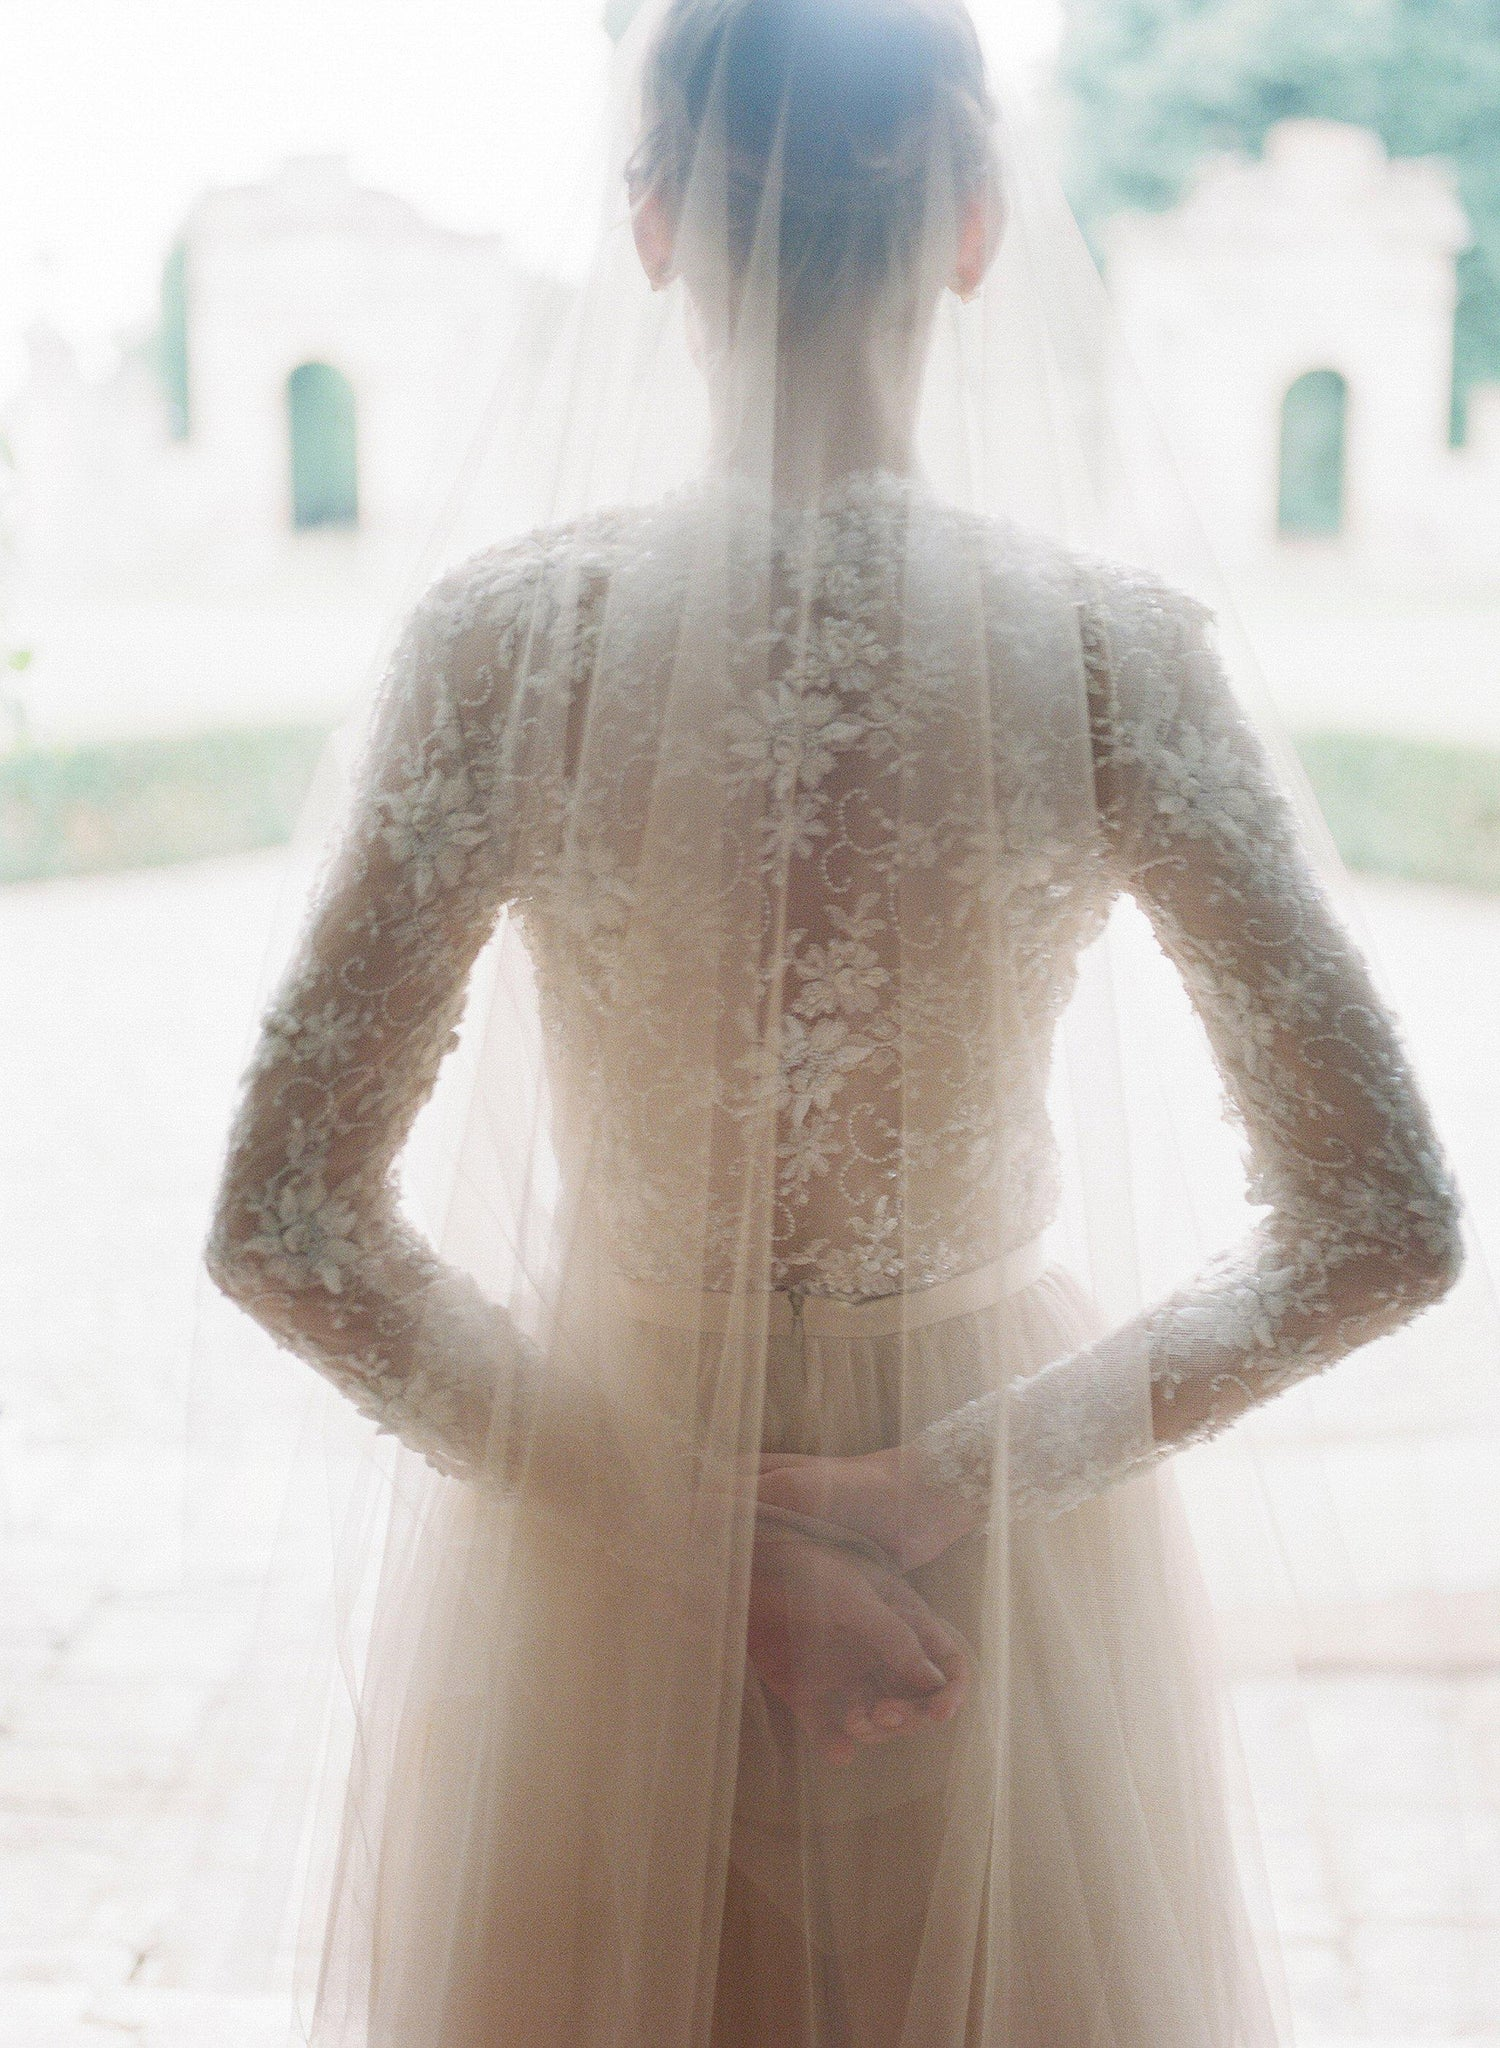 Back details showing brides sheer silk tulle veil with beaded lace top with sleeves